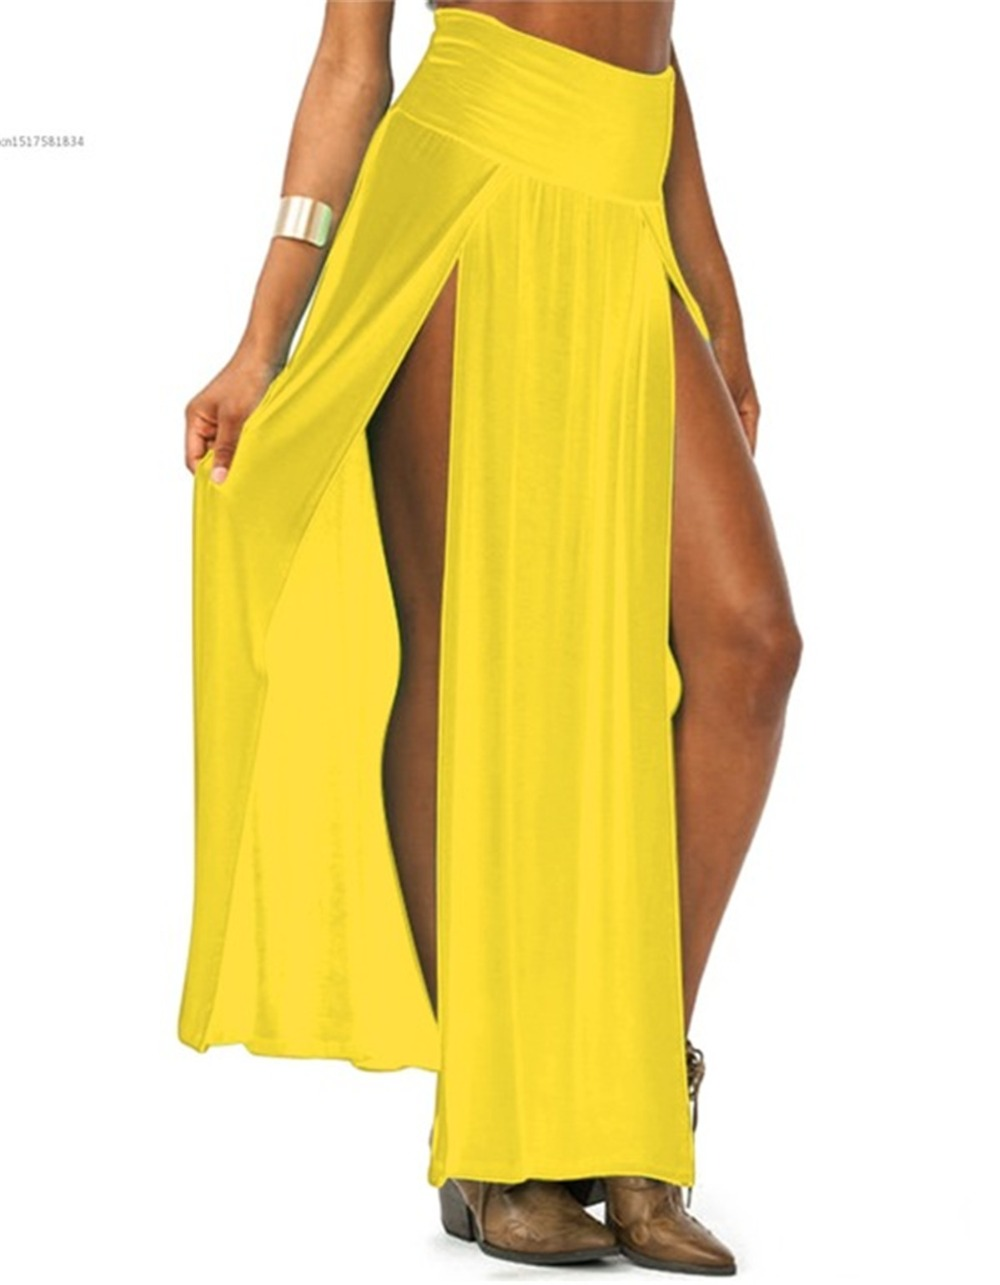 2019-New-Arrival-High-Waisted-Sexy-Womens-Double-Slits-Summer-Solid-Long-Maxi-Skirt-Wholesale-51.jpg_640x640 (6)